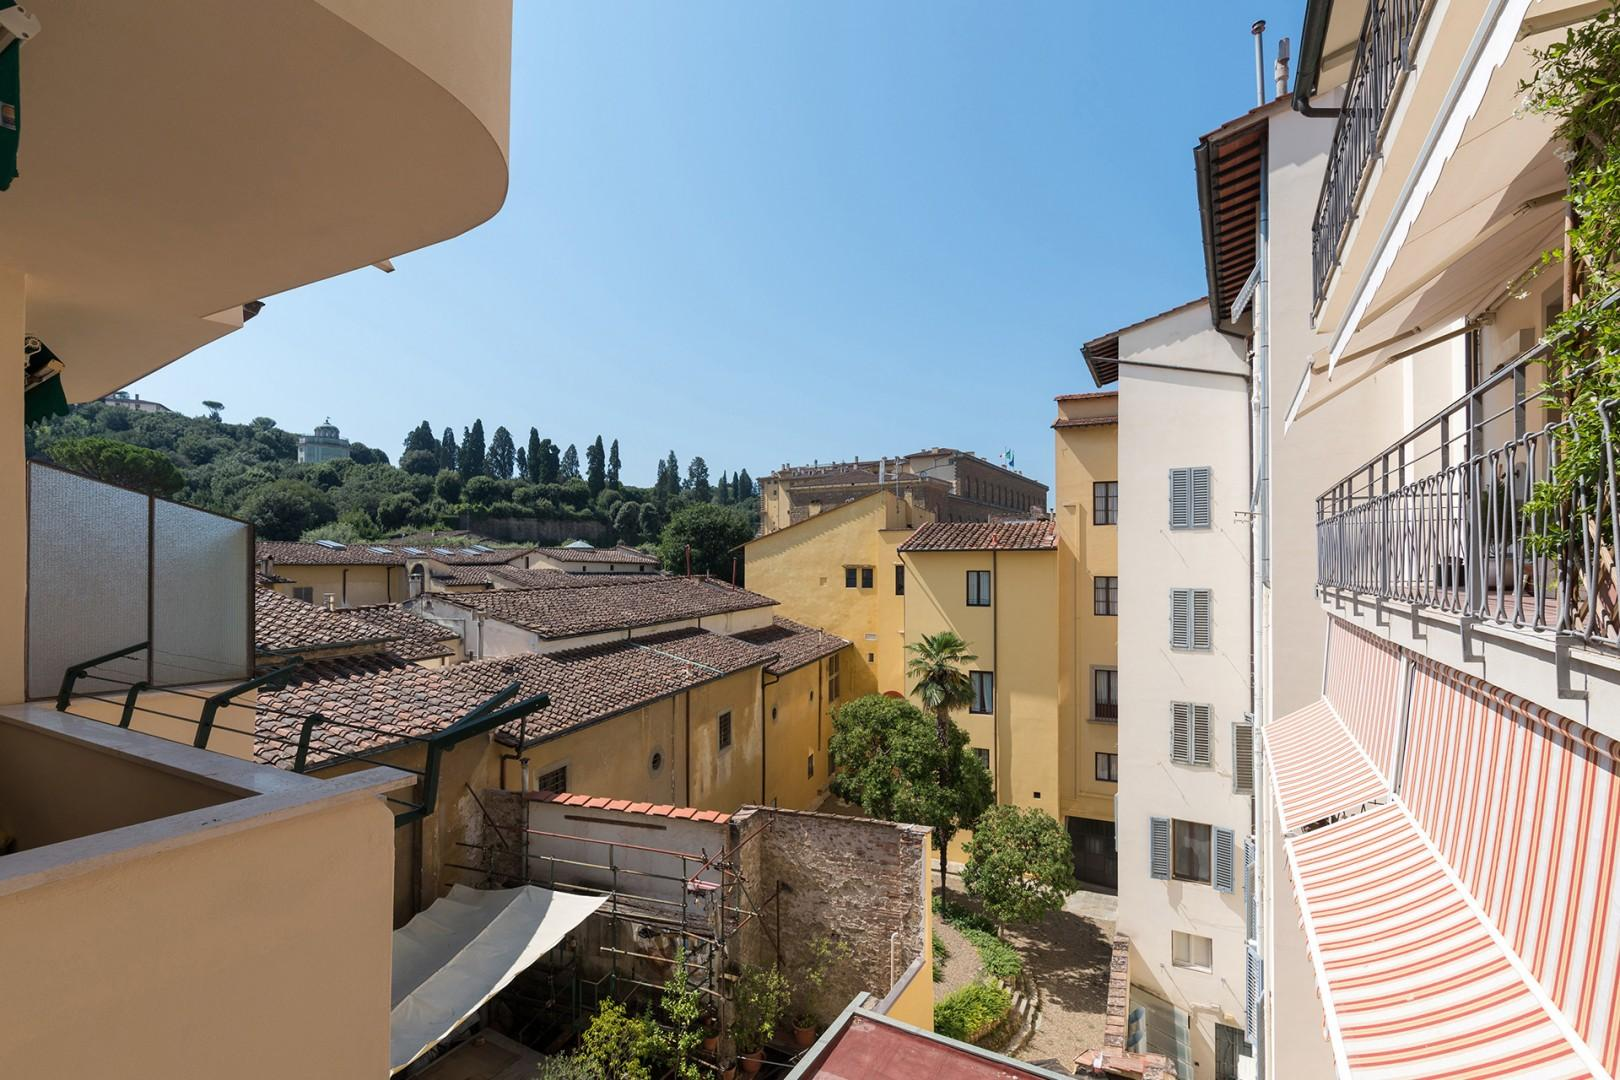 The balcony view is of the Boboli Gardens and Pitti Palace.